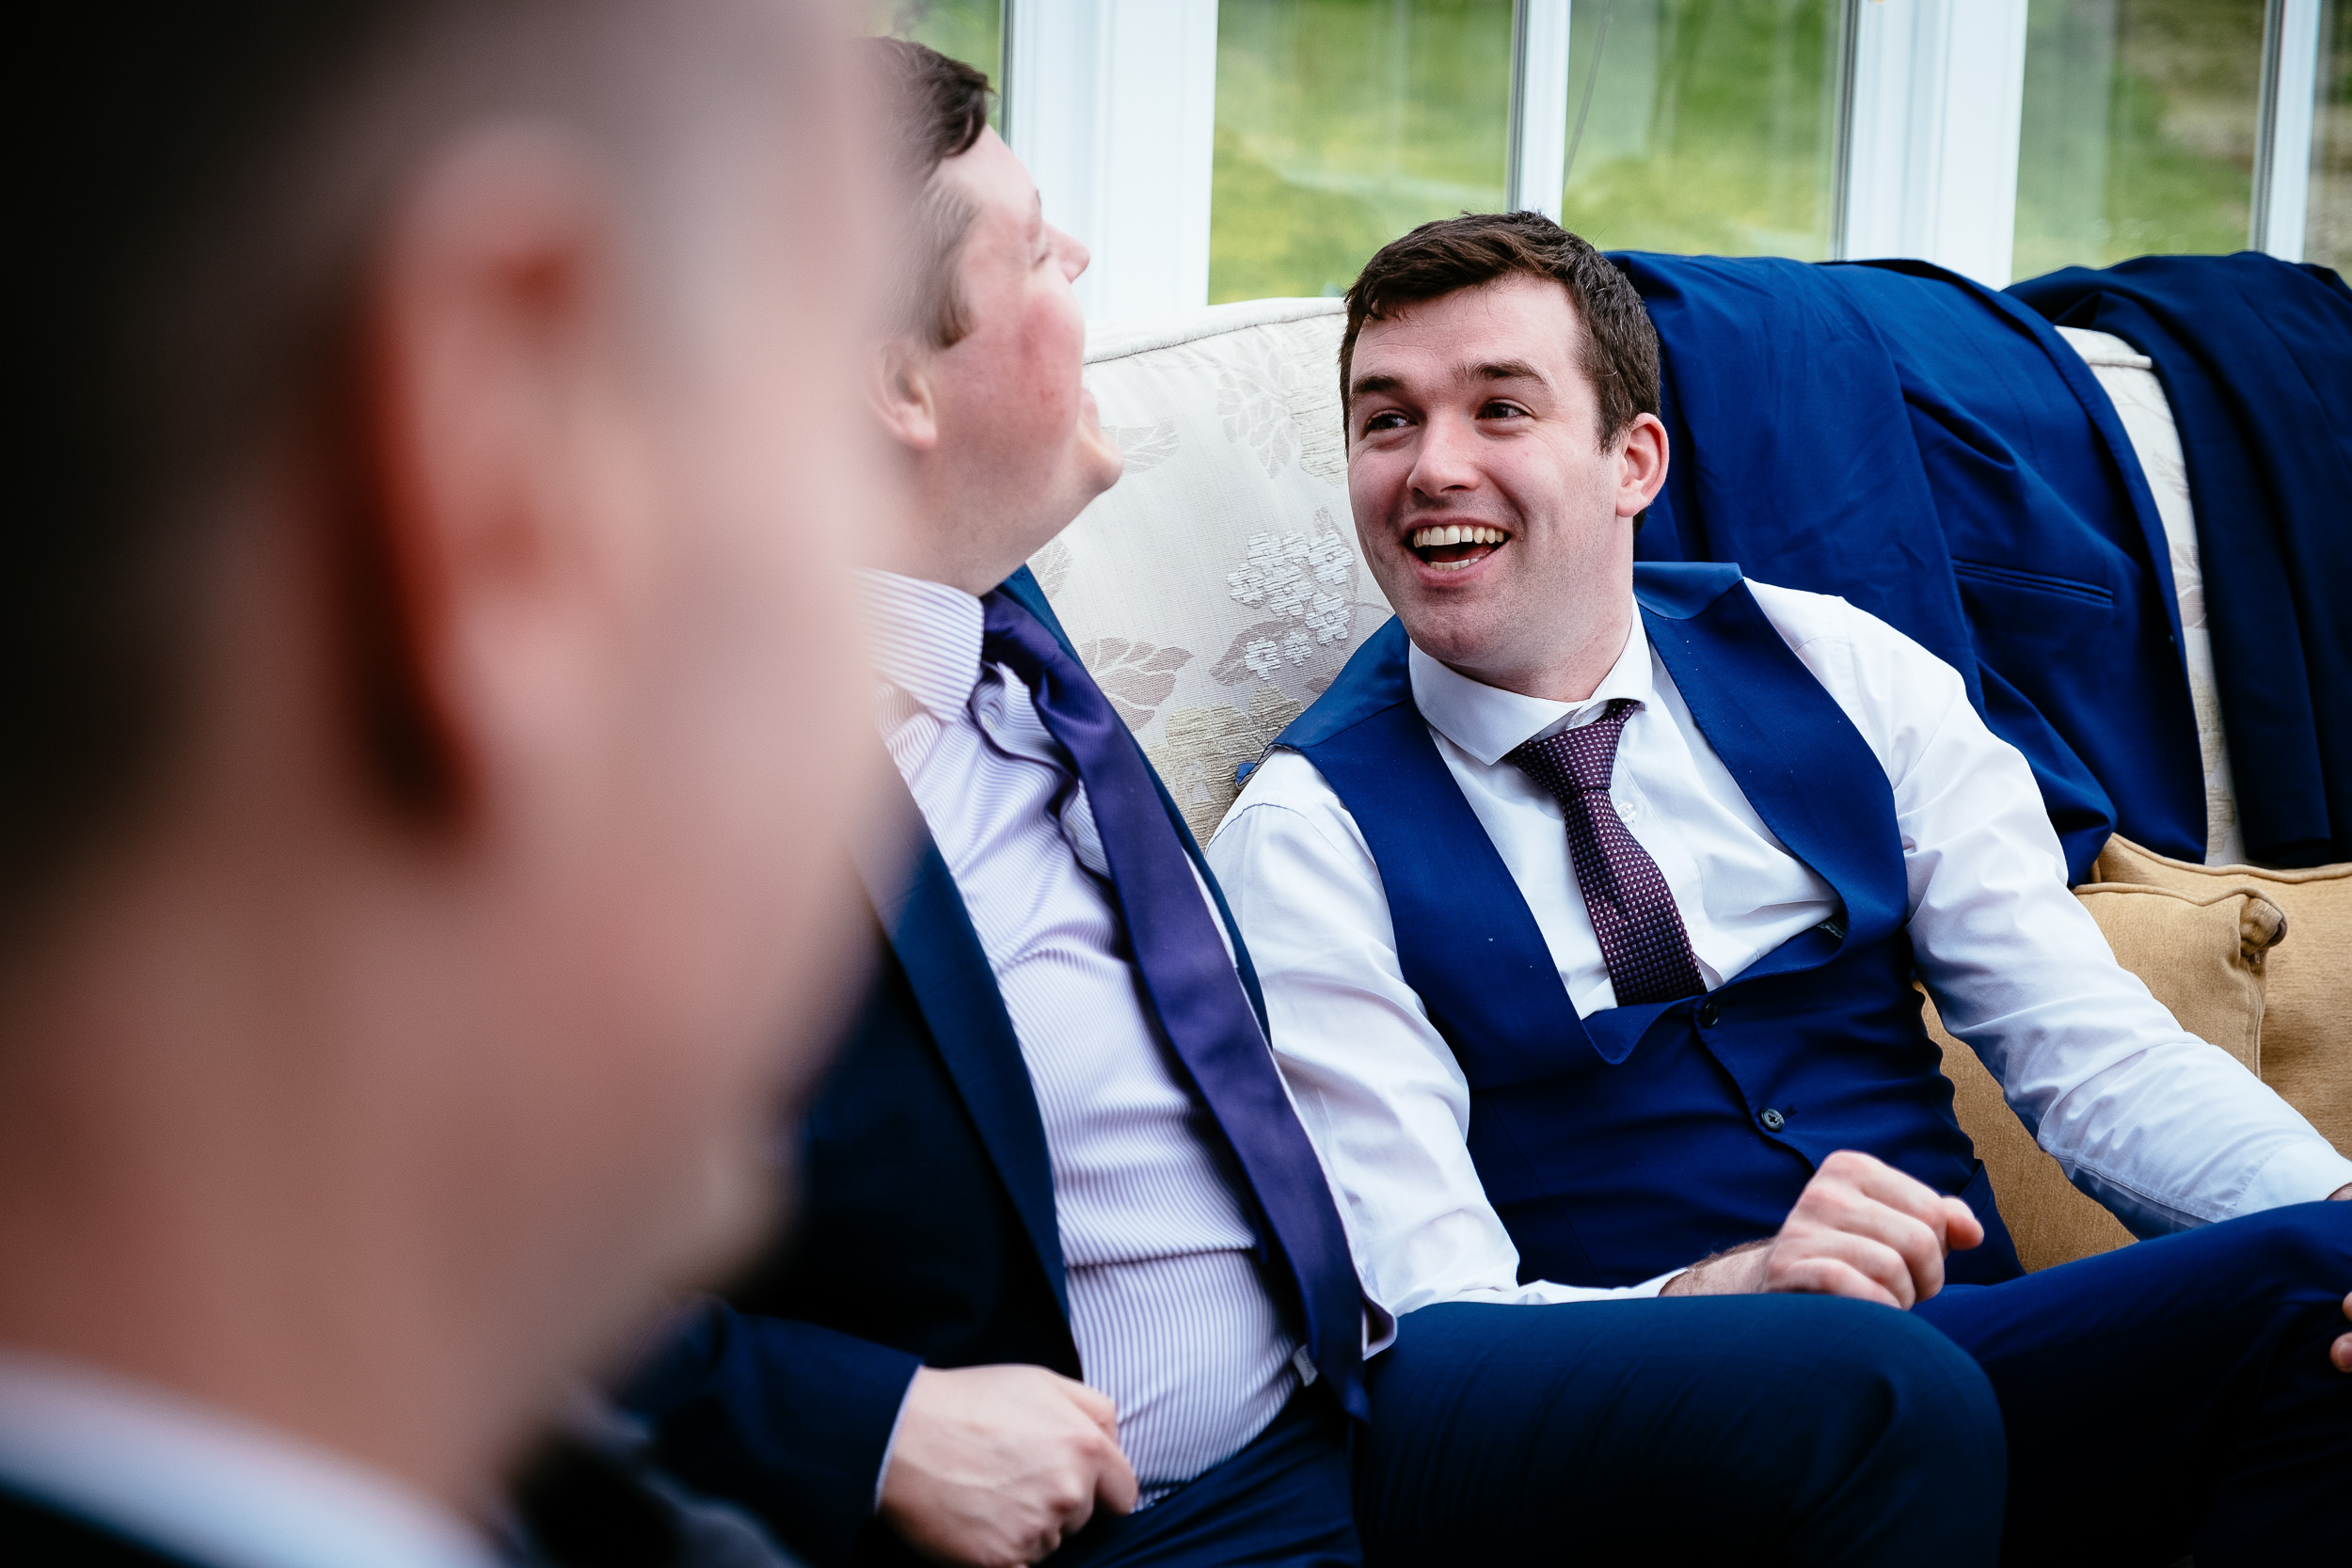 two male wedding guests laughing